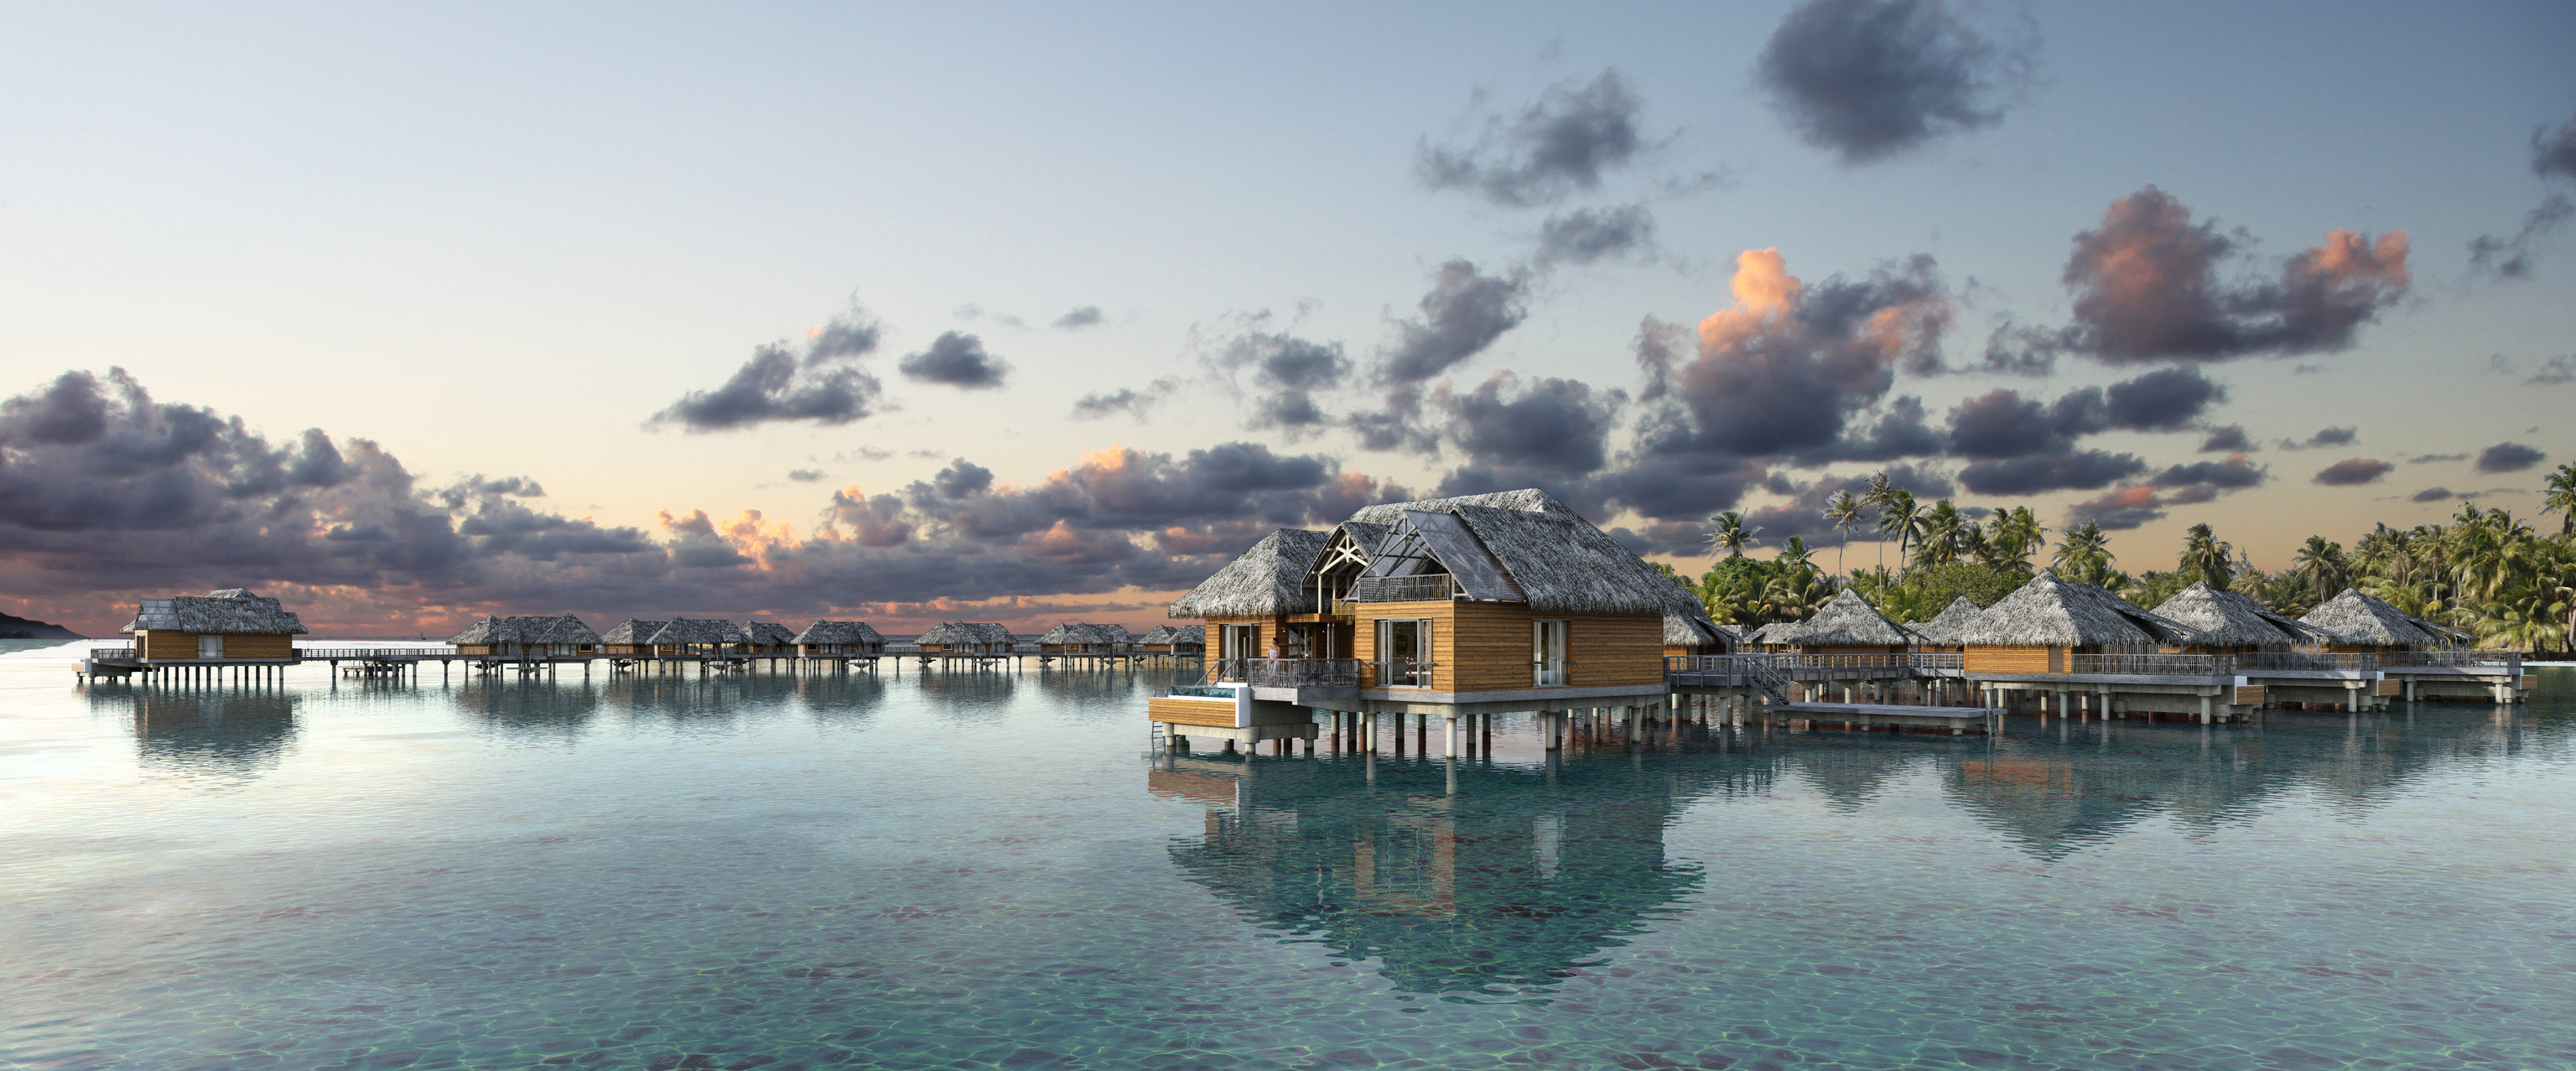 Hotels outdoor sky water reflection waterway scene cloud tree morning house evening Lake tourist attraction River Sea calm Sunset landscape dawn bayou plant dusk bank dock traveling tourism sunrise day